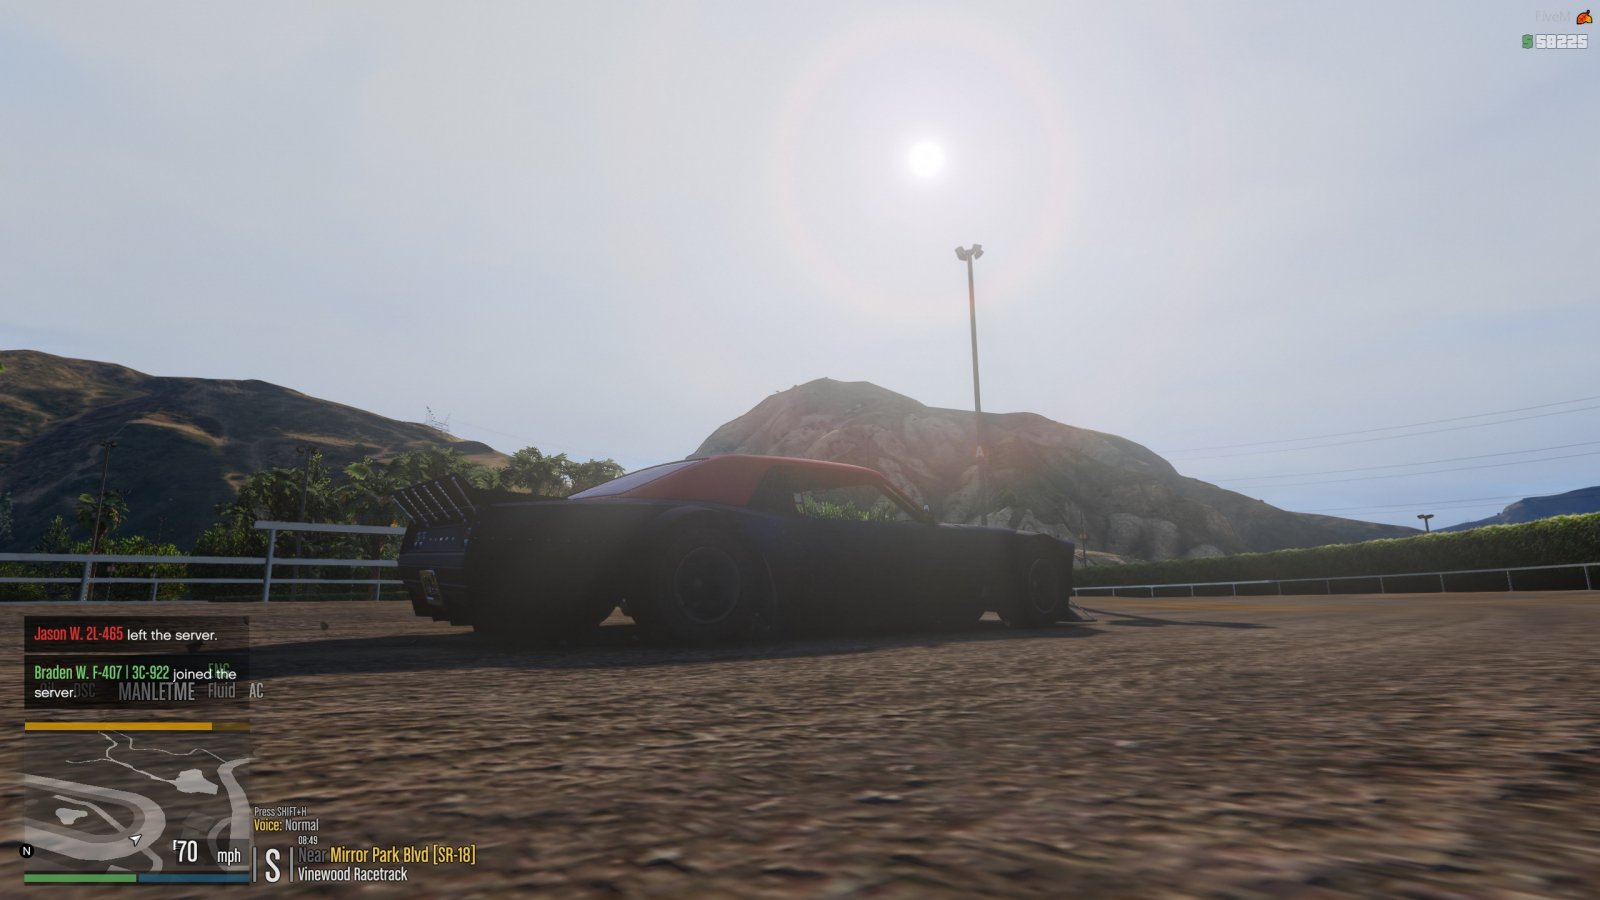 A day racing at the Vinewood Racetrack